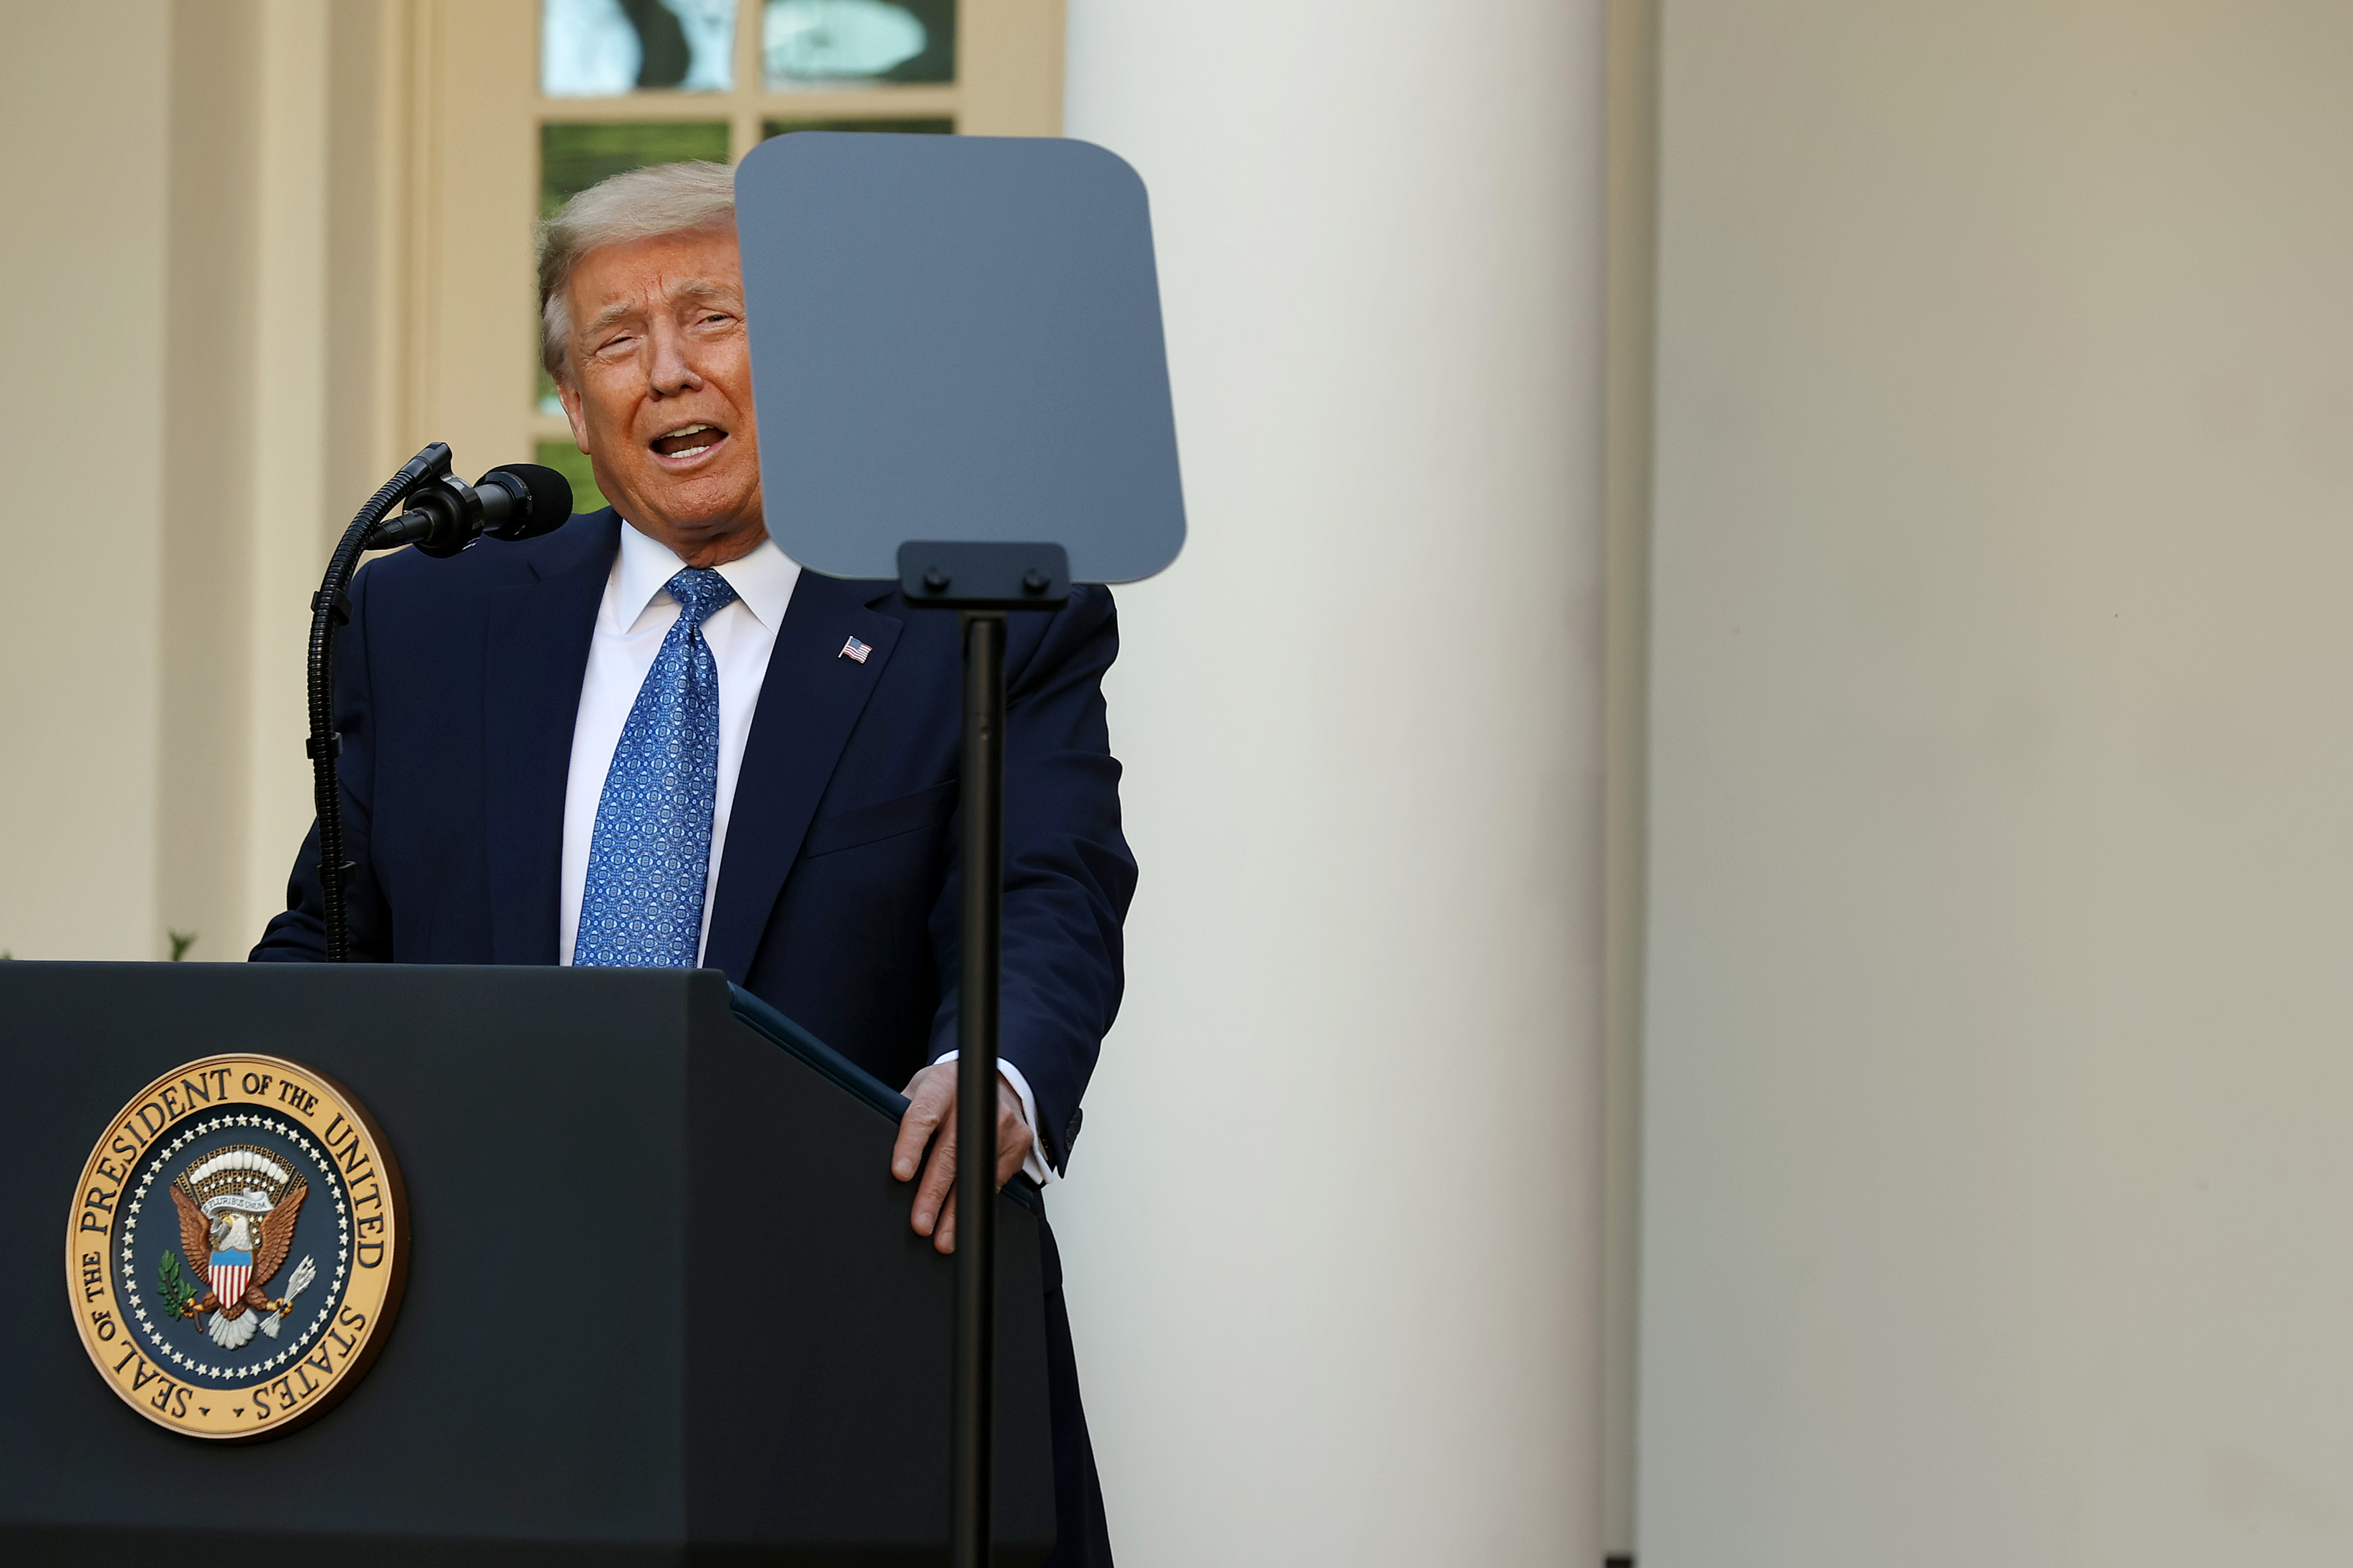 President Donald Trump makes a statement to the press in the Rose Garden on June 1, 2020 in Washington, D.C.